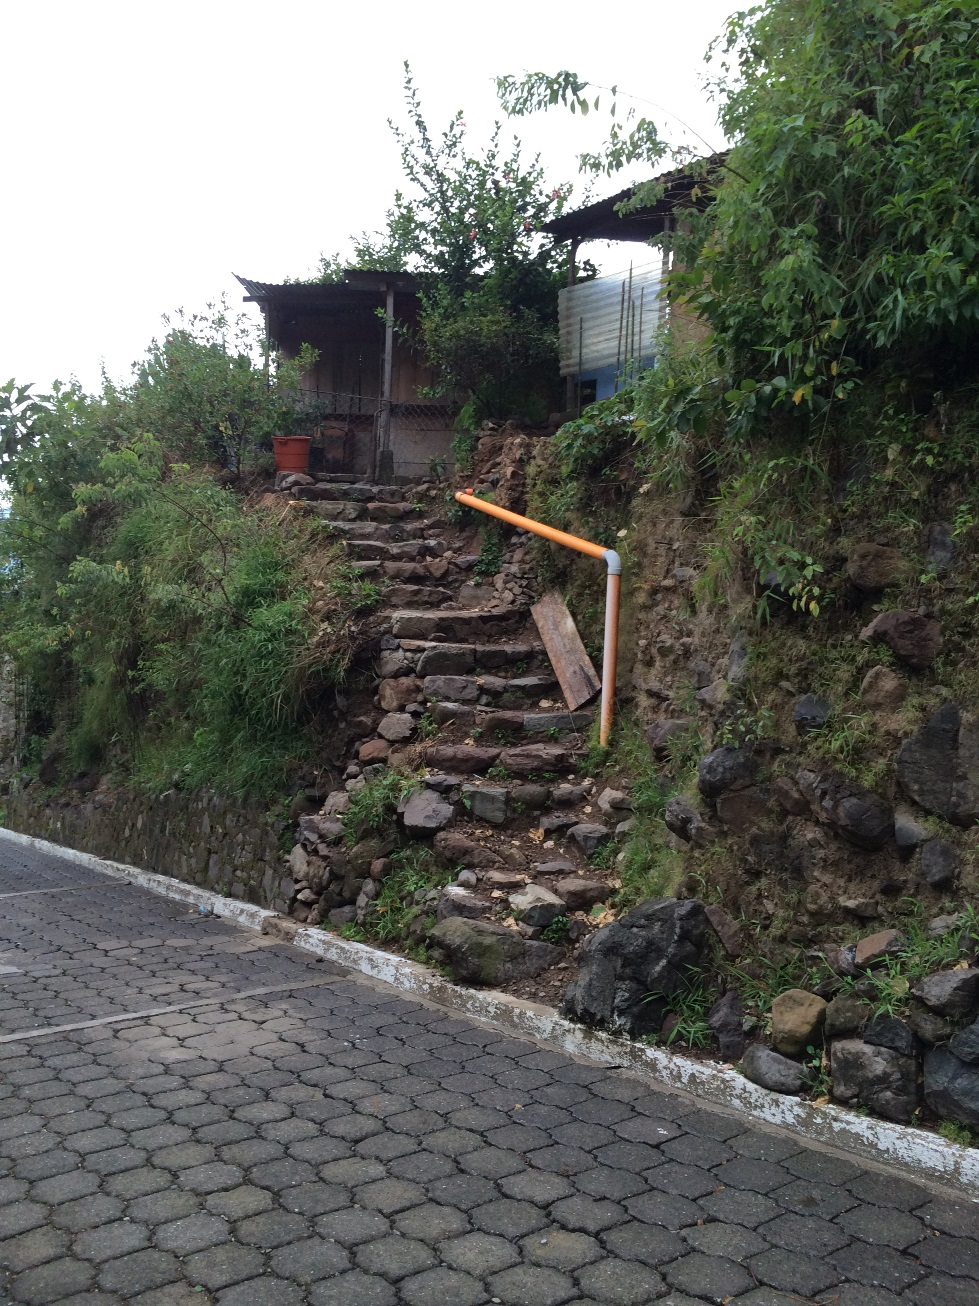 Although we took this trip two months ago, this image has stayed with me. This is someone's walkway. The house may be decrepit and pieced together with recycled materials, but their view of Lake Atitlan is breathtaking.